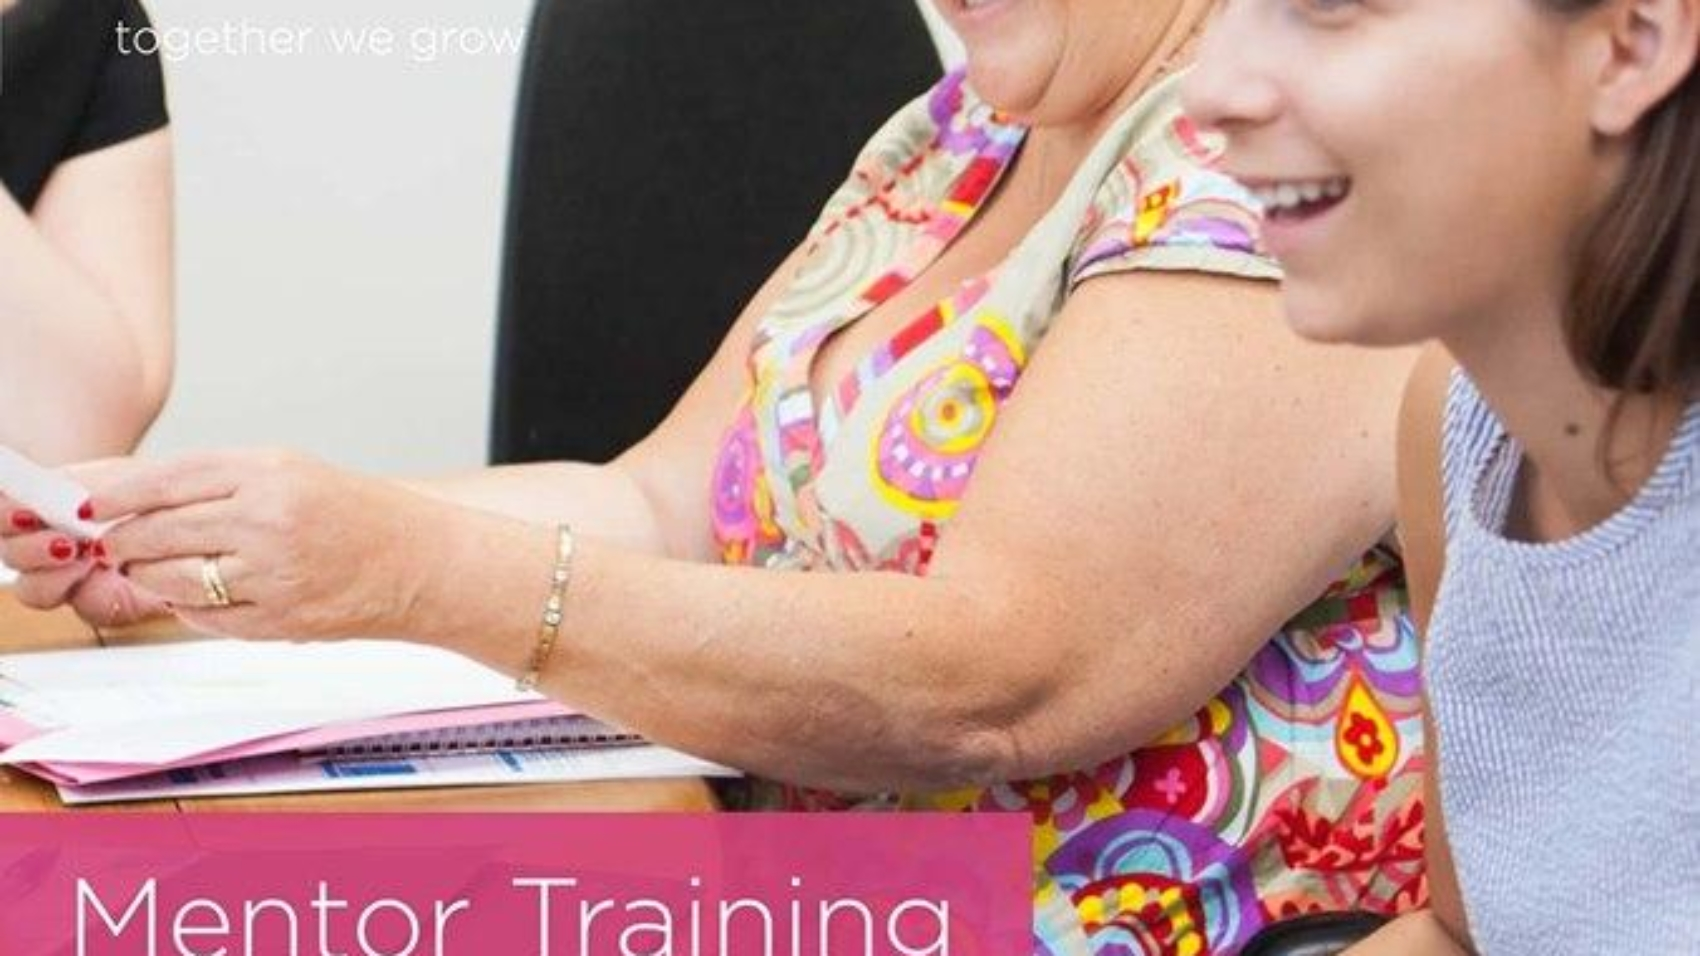 Mentor Training Course for Business Owners